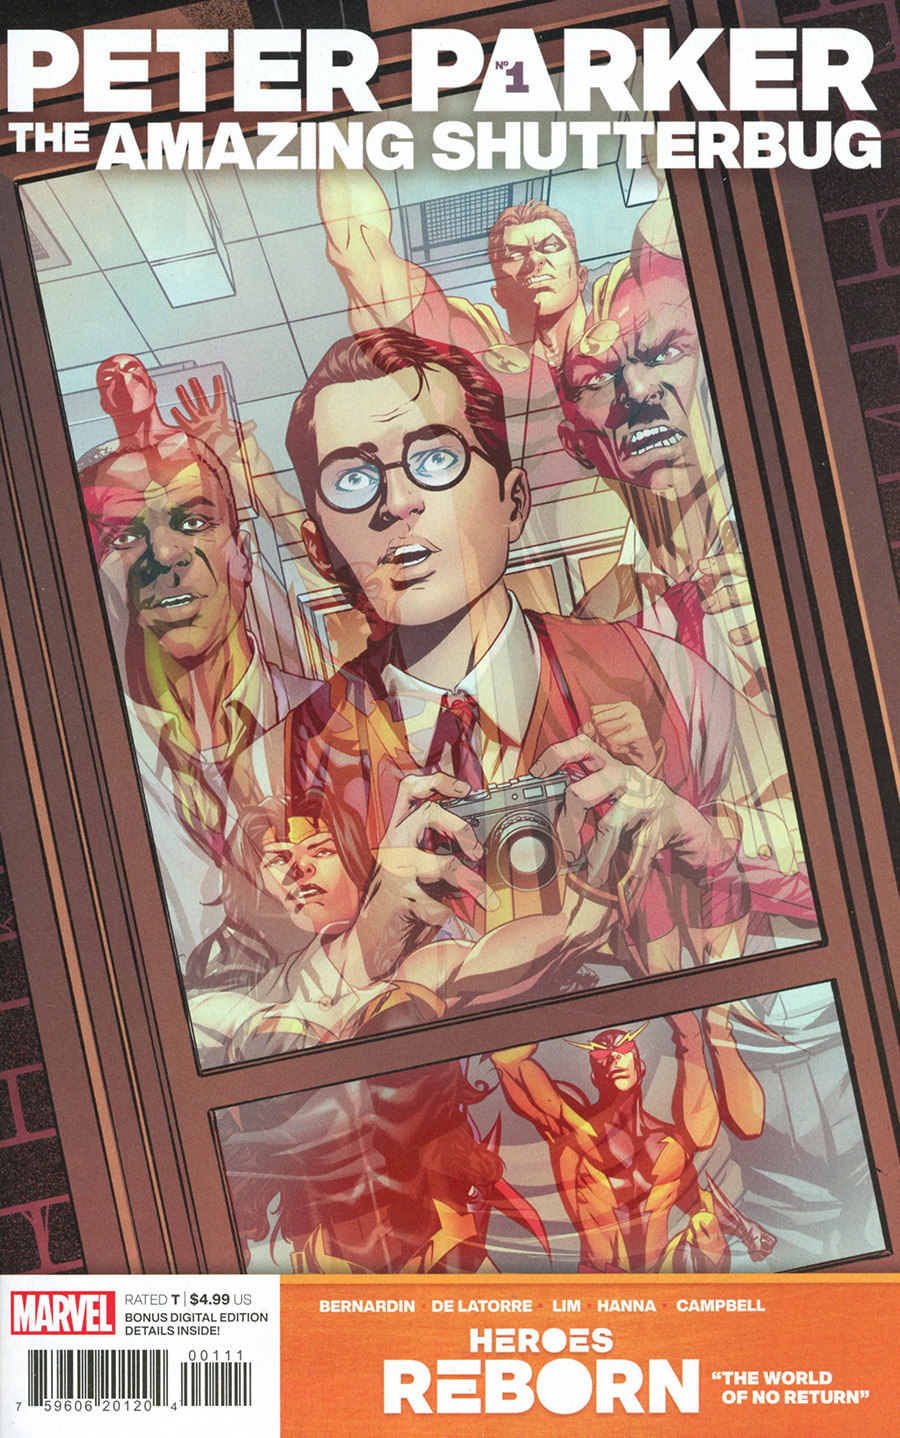 Heroes Reborn Peter Parker The Amazing Shutterbug #1 (One Shot) Cover A Regular Mike McKone Cover